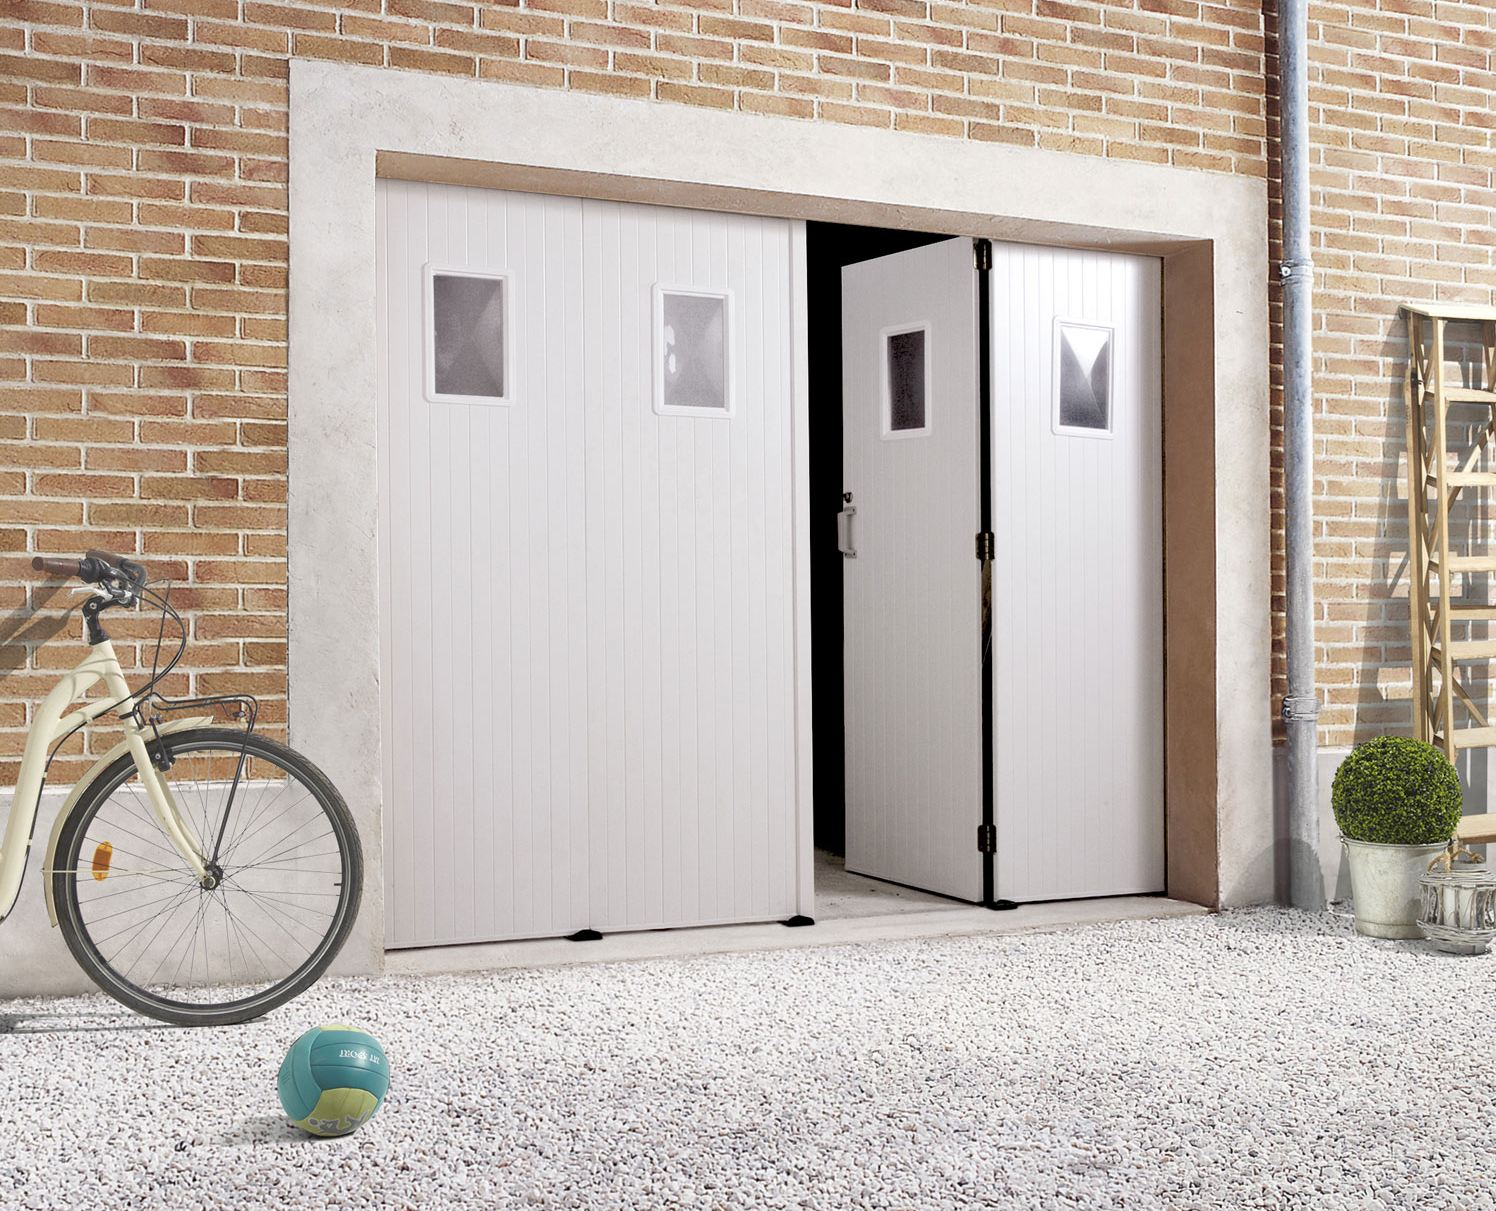 Prix d 39 une porte de garage en pvc 2018 for Installer chatiere porte garage